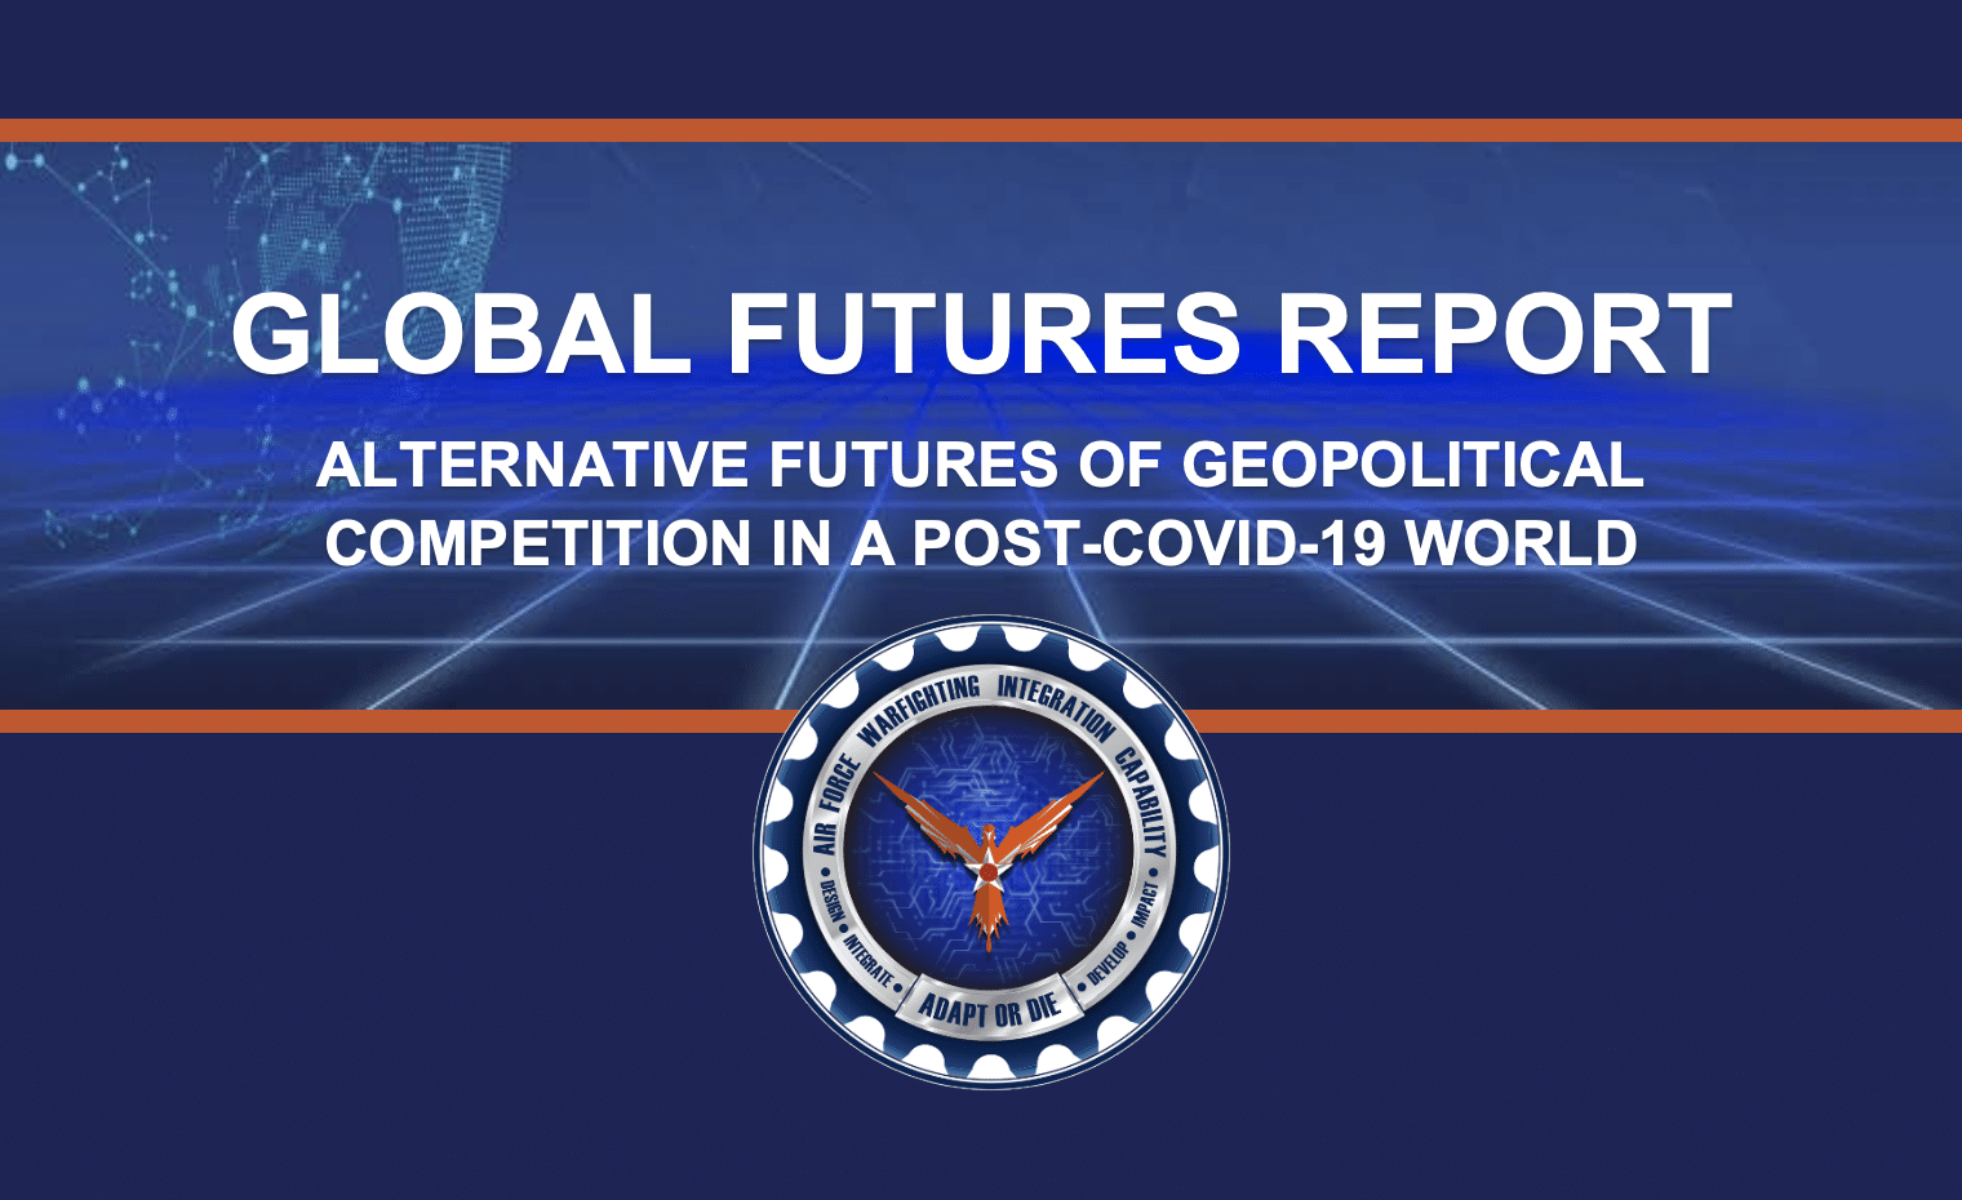 ALTERNATIVE FUTURES OF GEOPOLITICAL COMPETITION IN A POST-COVID-19 WORLD